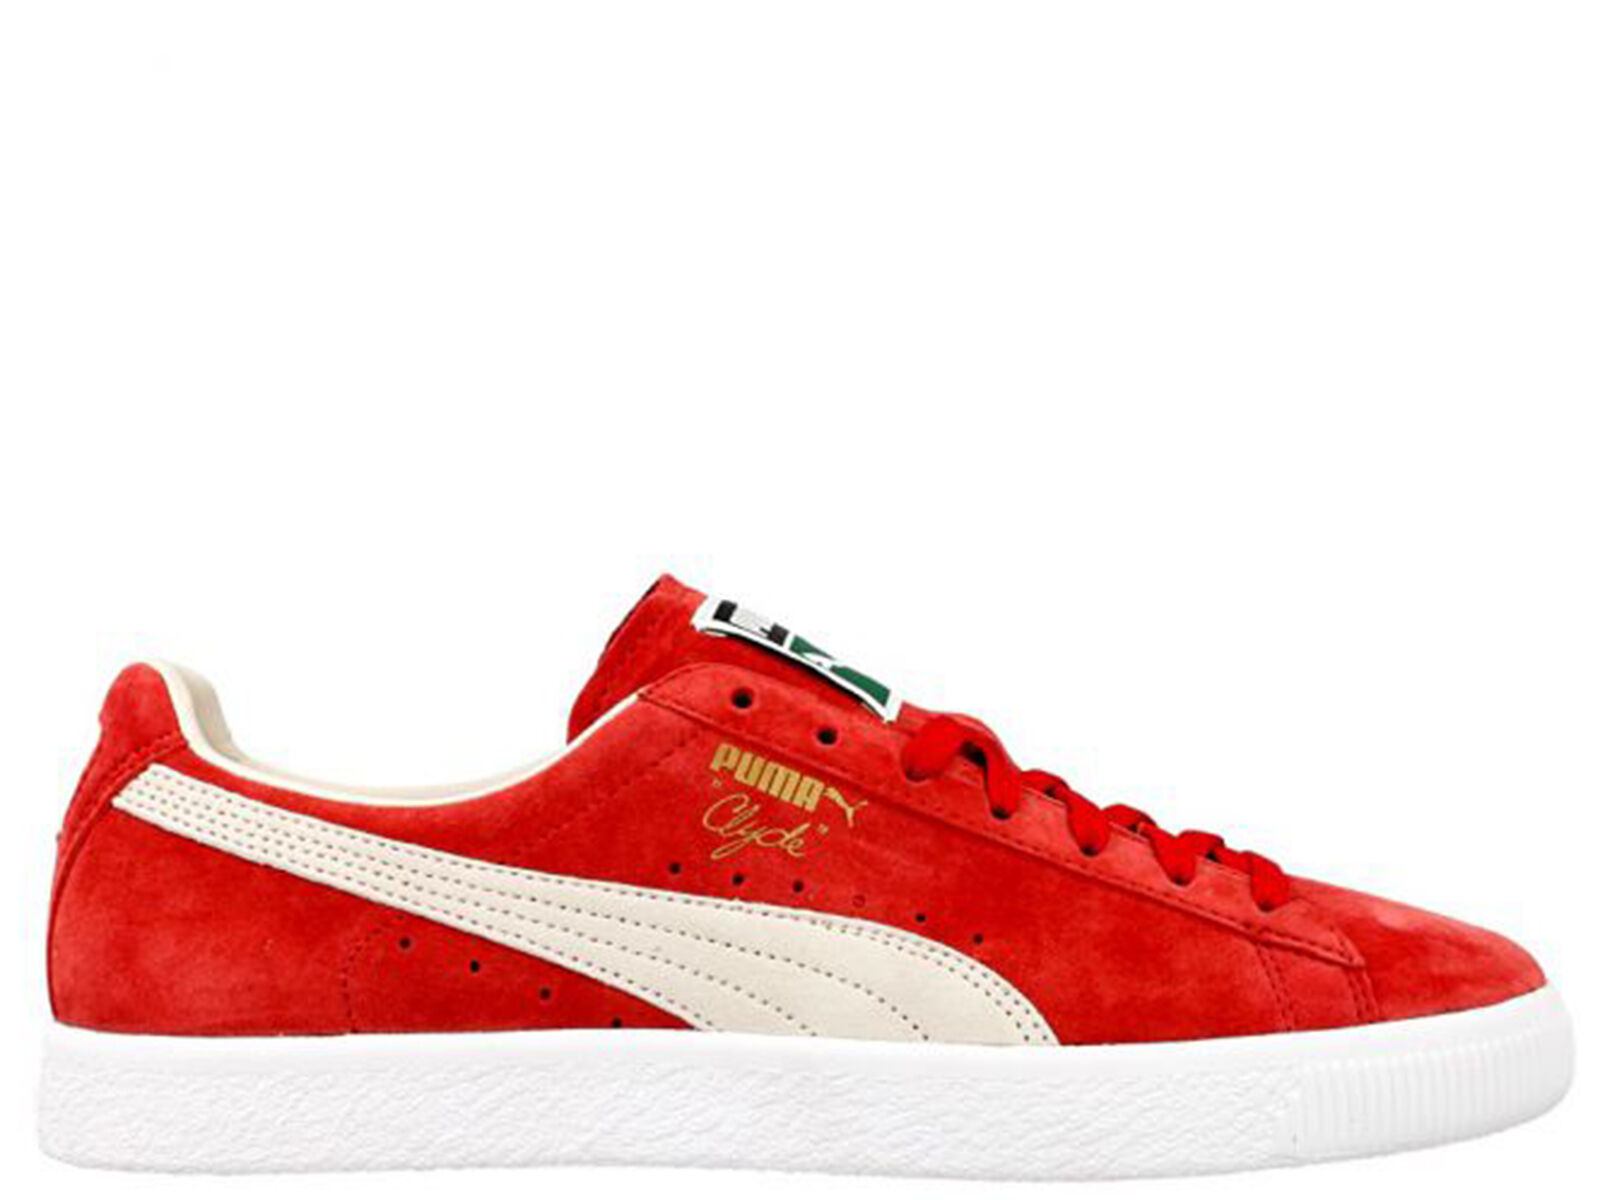 Brand Athletic New Puma Clyde Men's Athletic Brand Fashion Sneakers [361466 03] a3f510